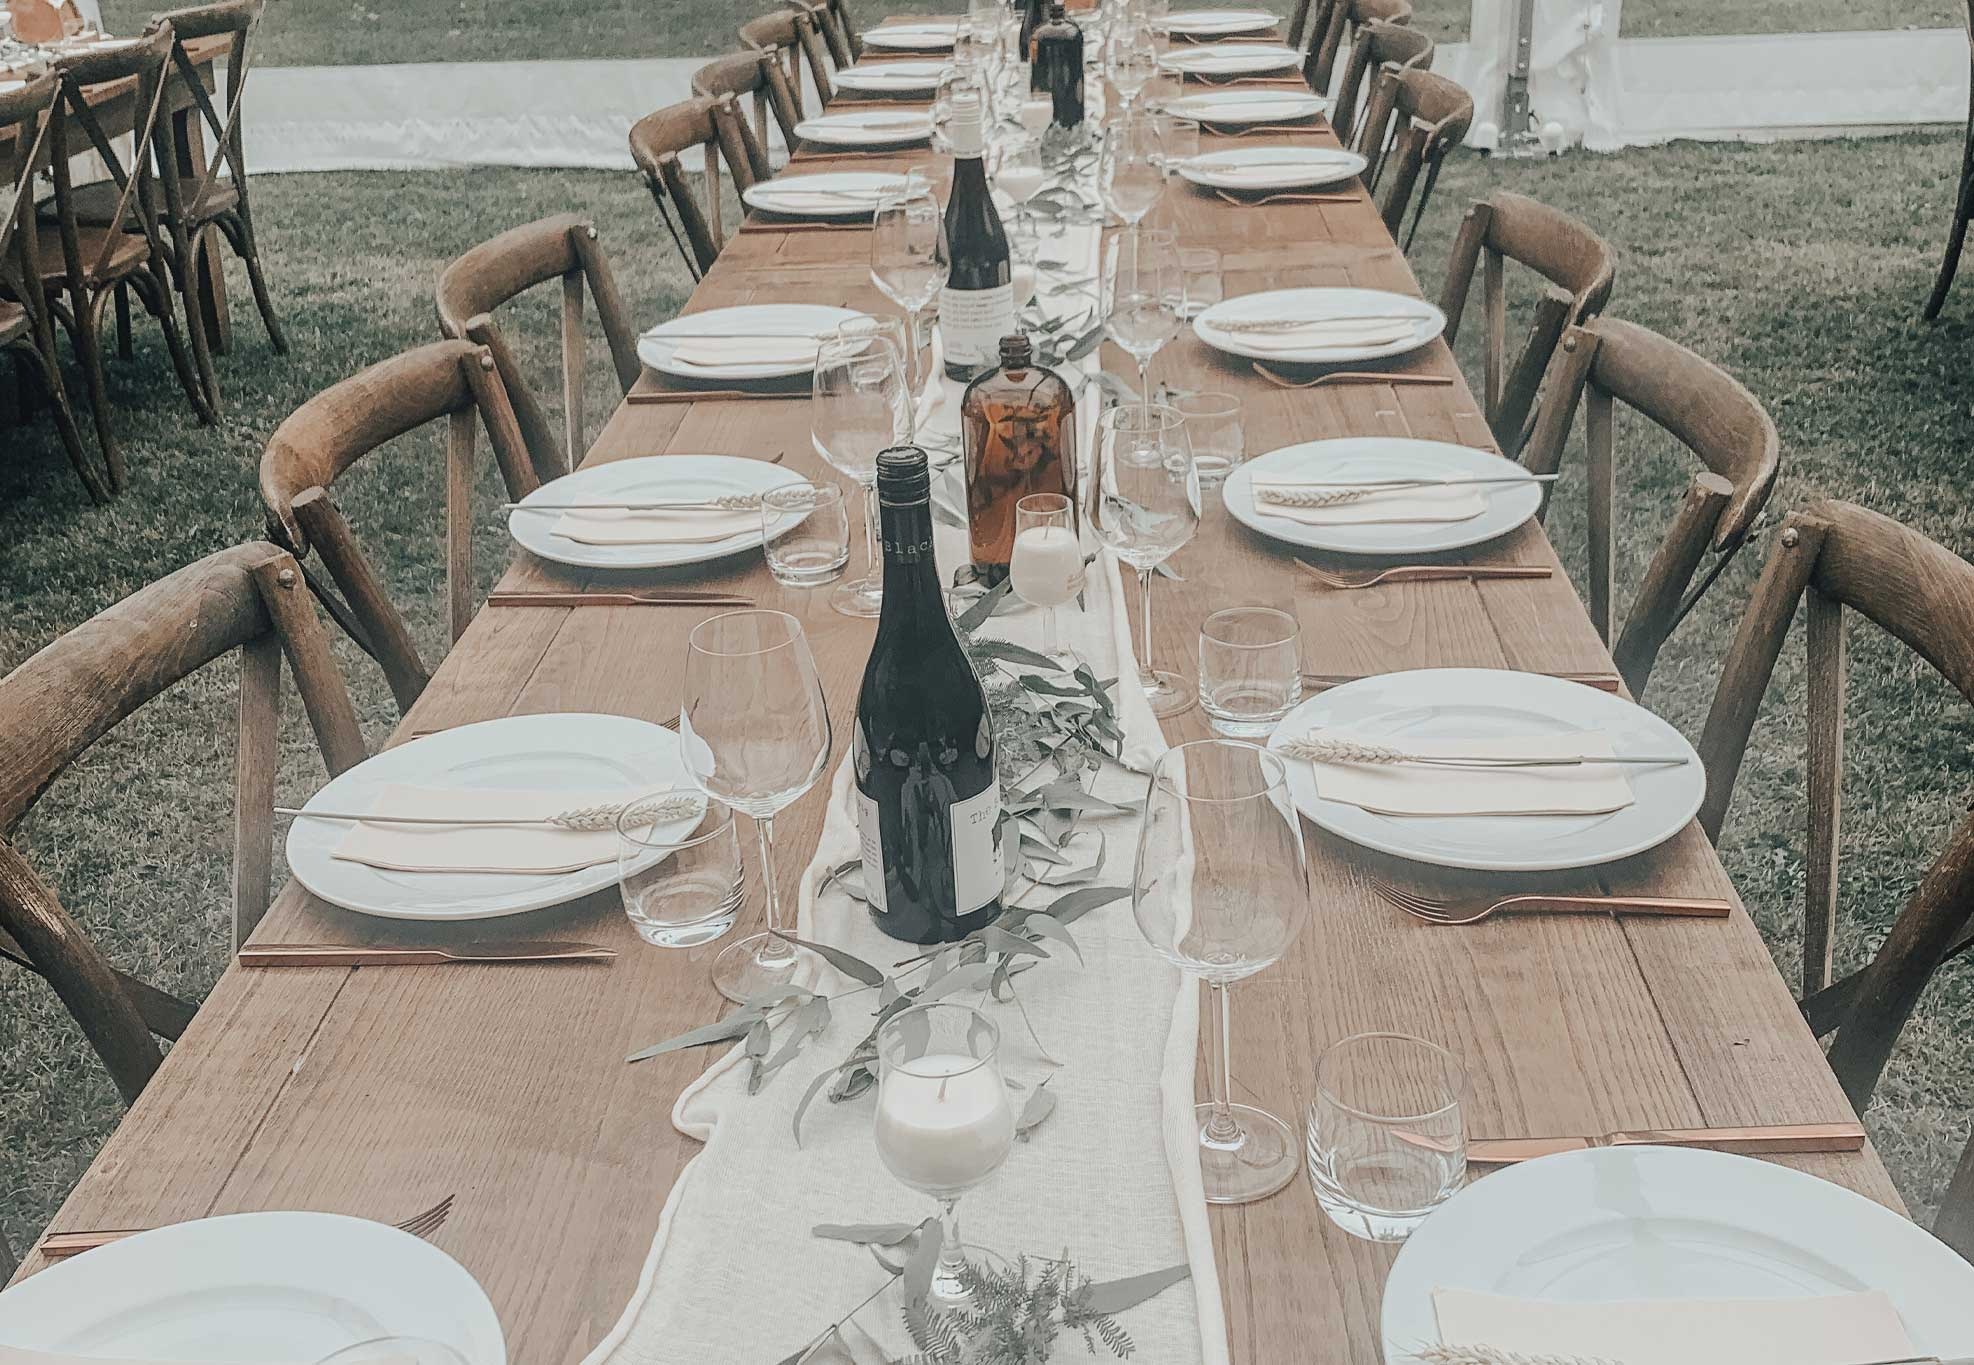 silk-estate-marquee-weddings-and-events-styling-and-hire-crockery-dinner-plate